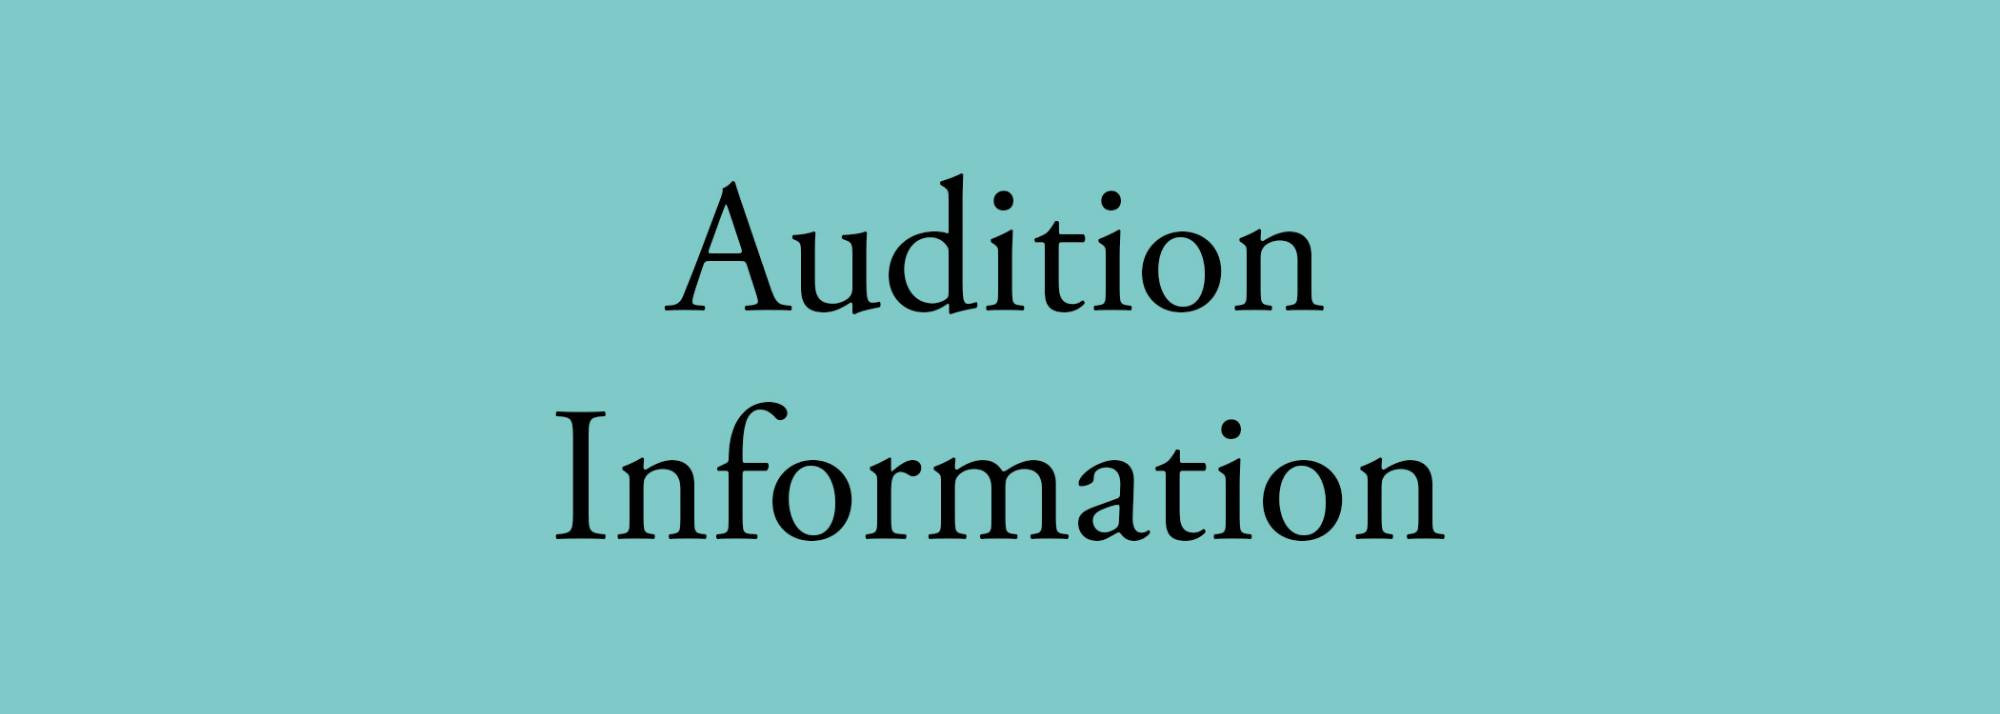 music audition information button